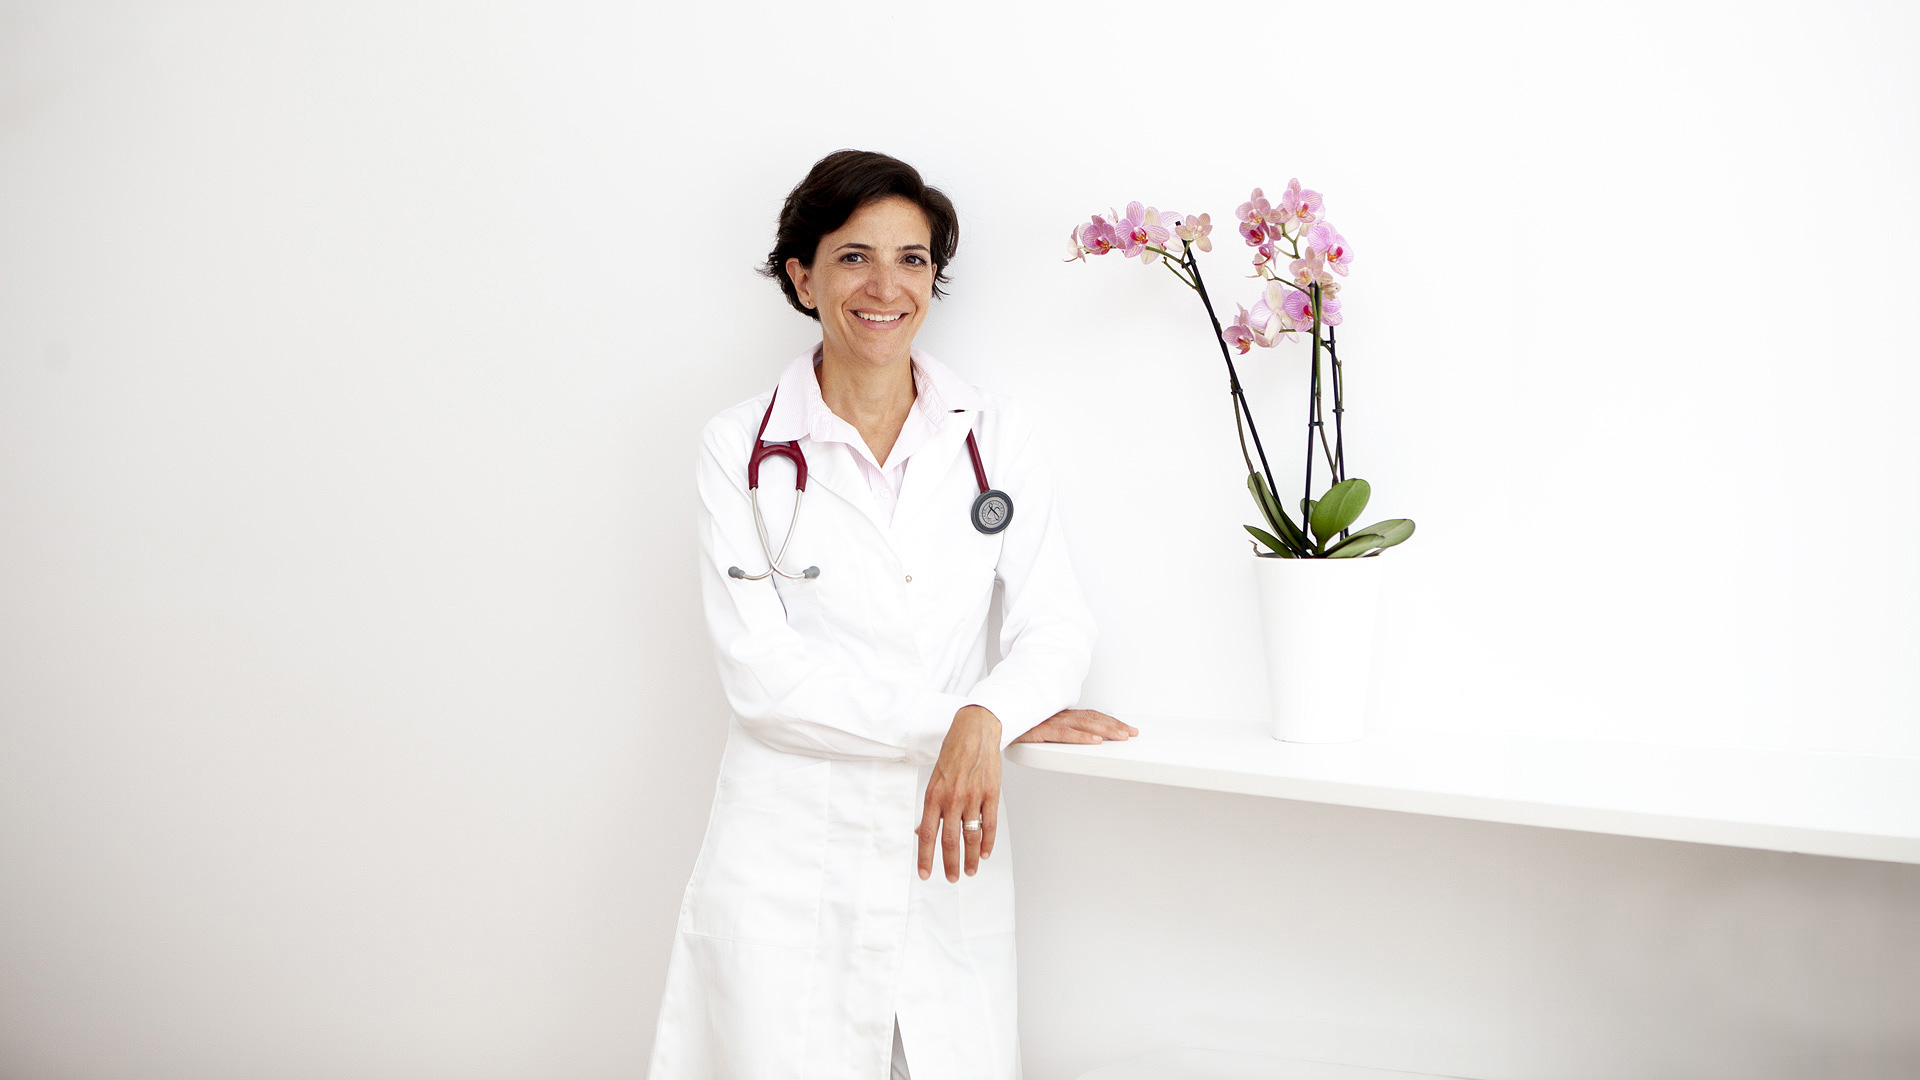 Dr. Melina Gulesserian